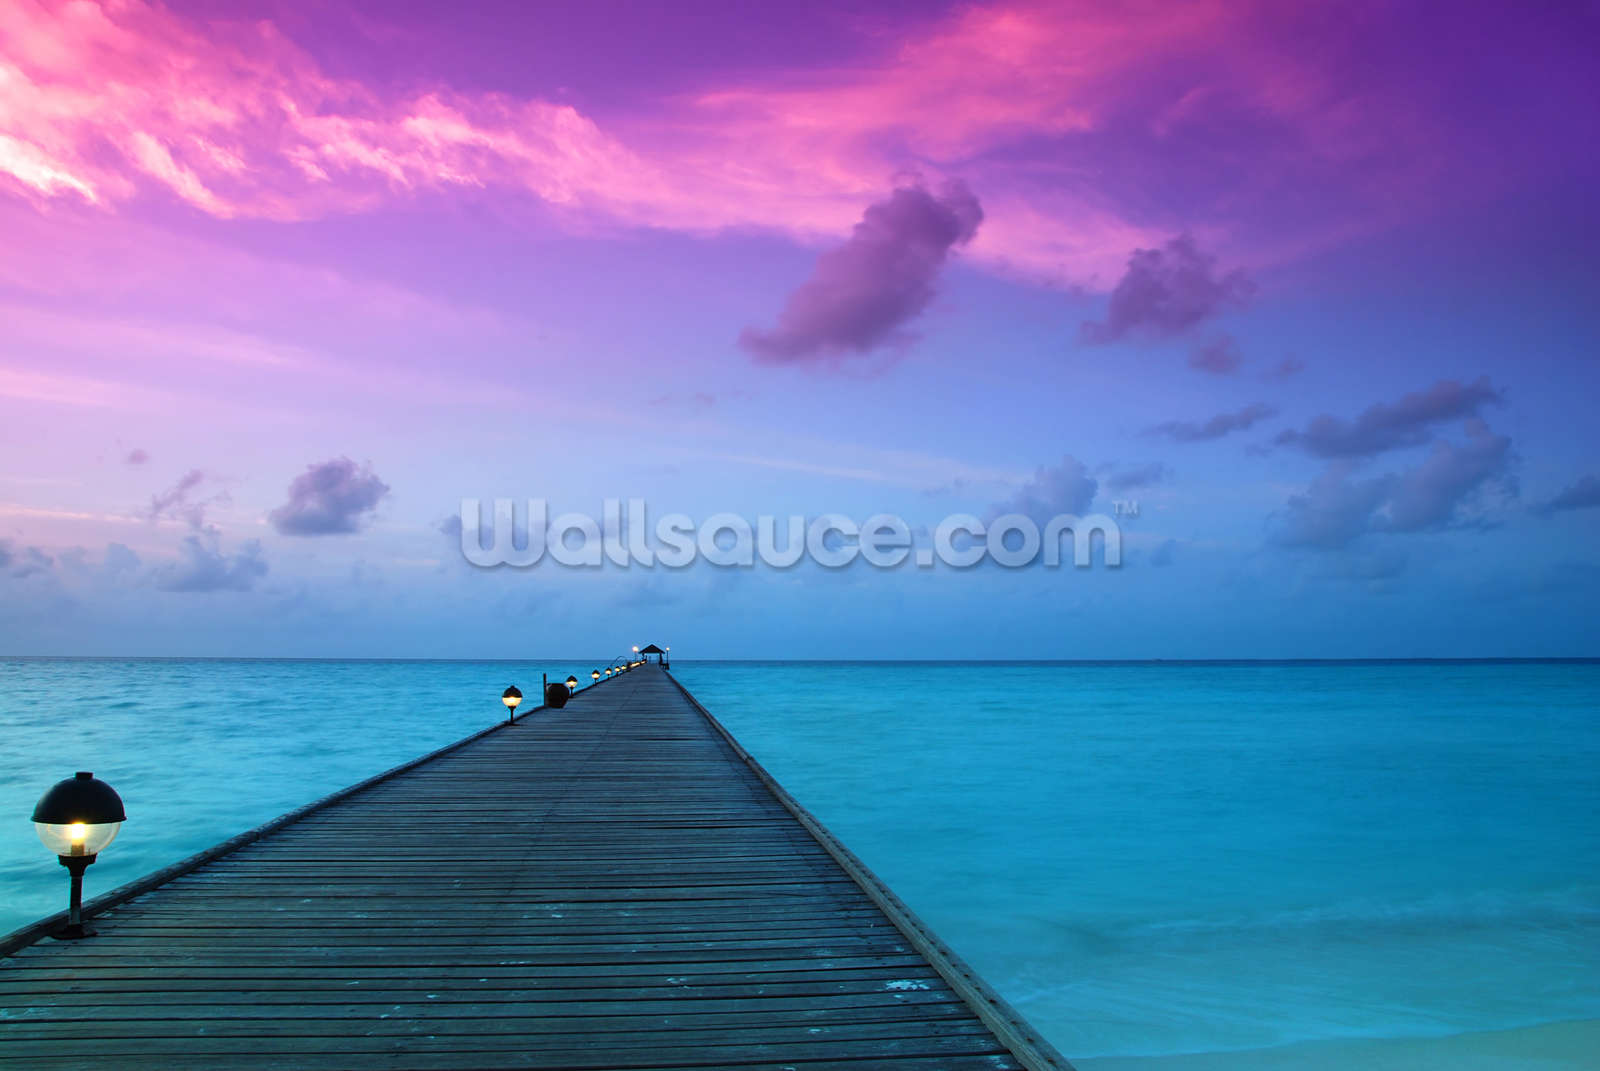 sunset in the maldives wallpaper wall mural wallsauce save your design for later